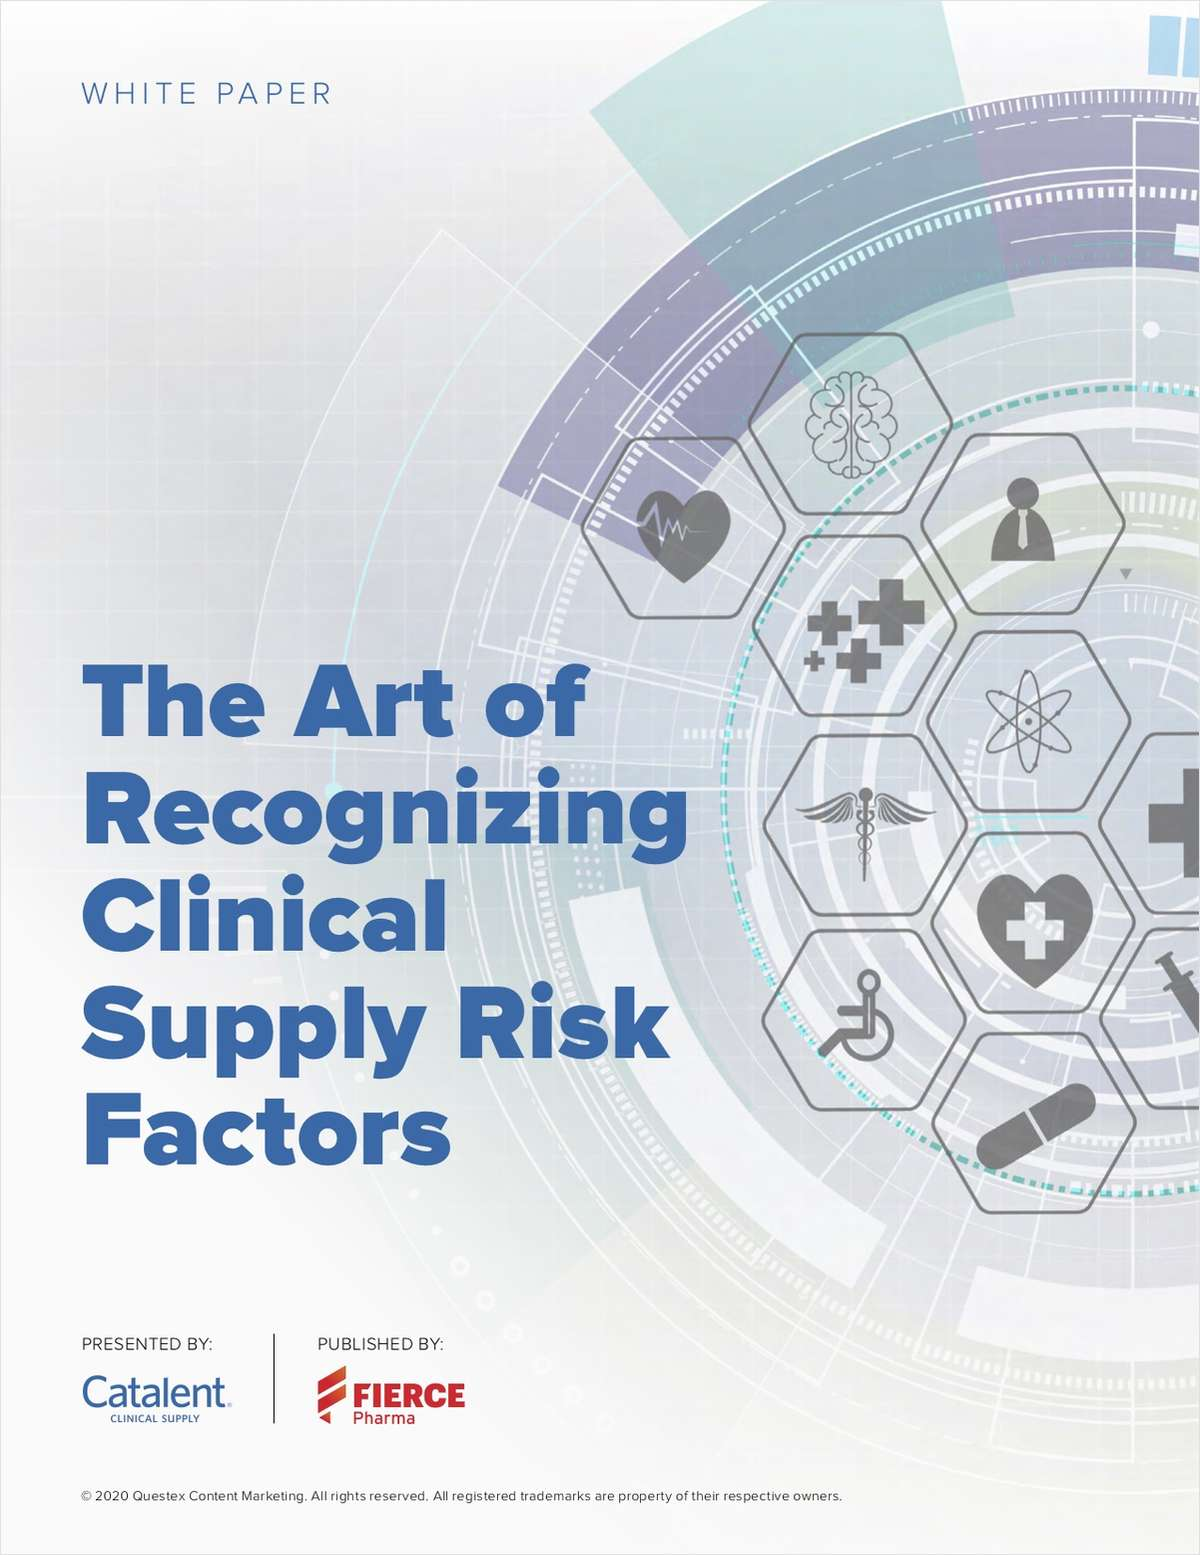 The Art of Recognizing Clinical Supply Risk Factors